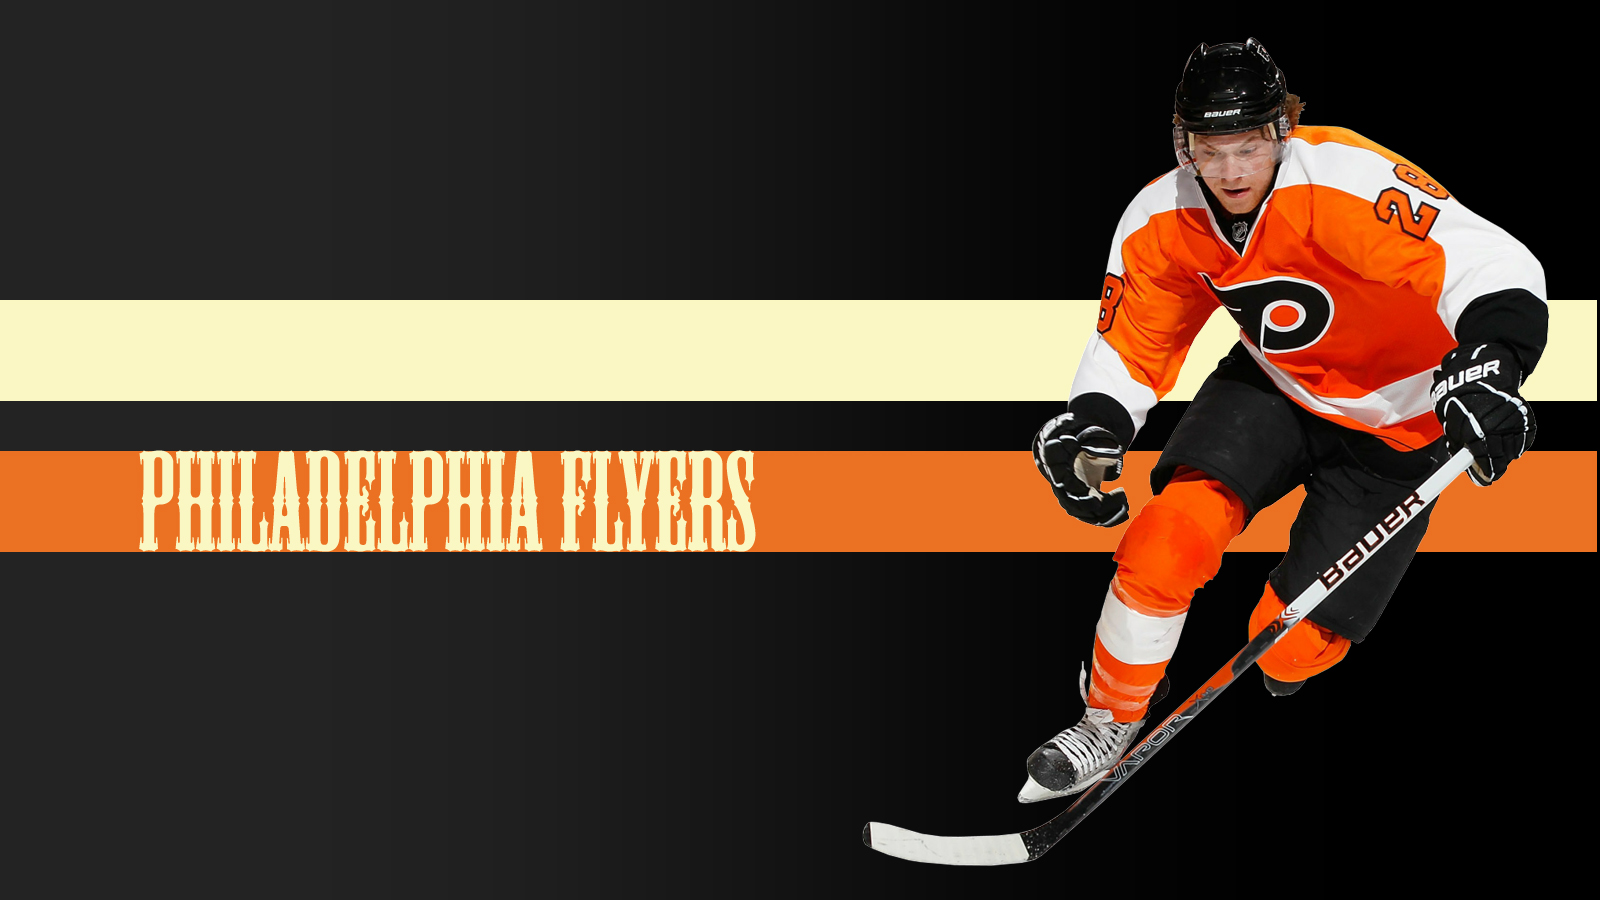 NHL Wallpaper Flyers wallpaper scrensaver 1600x900